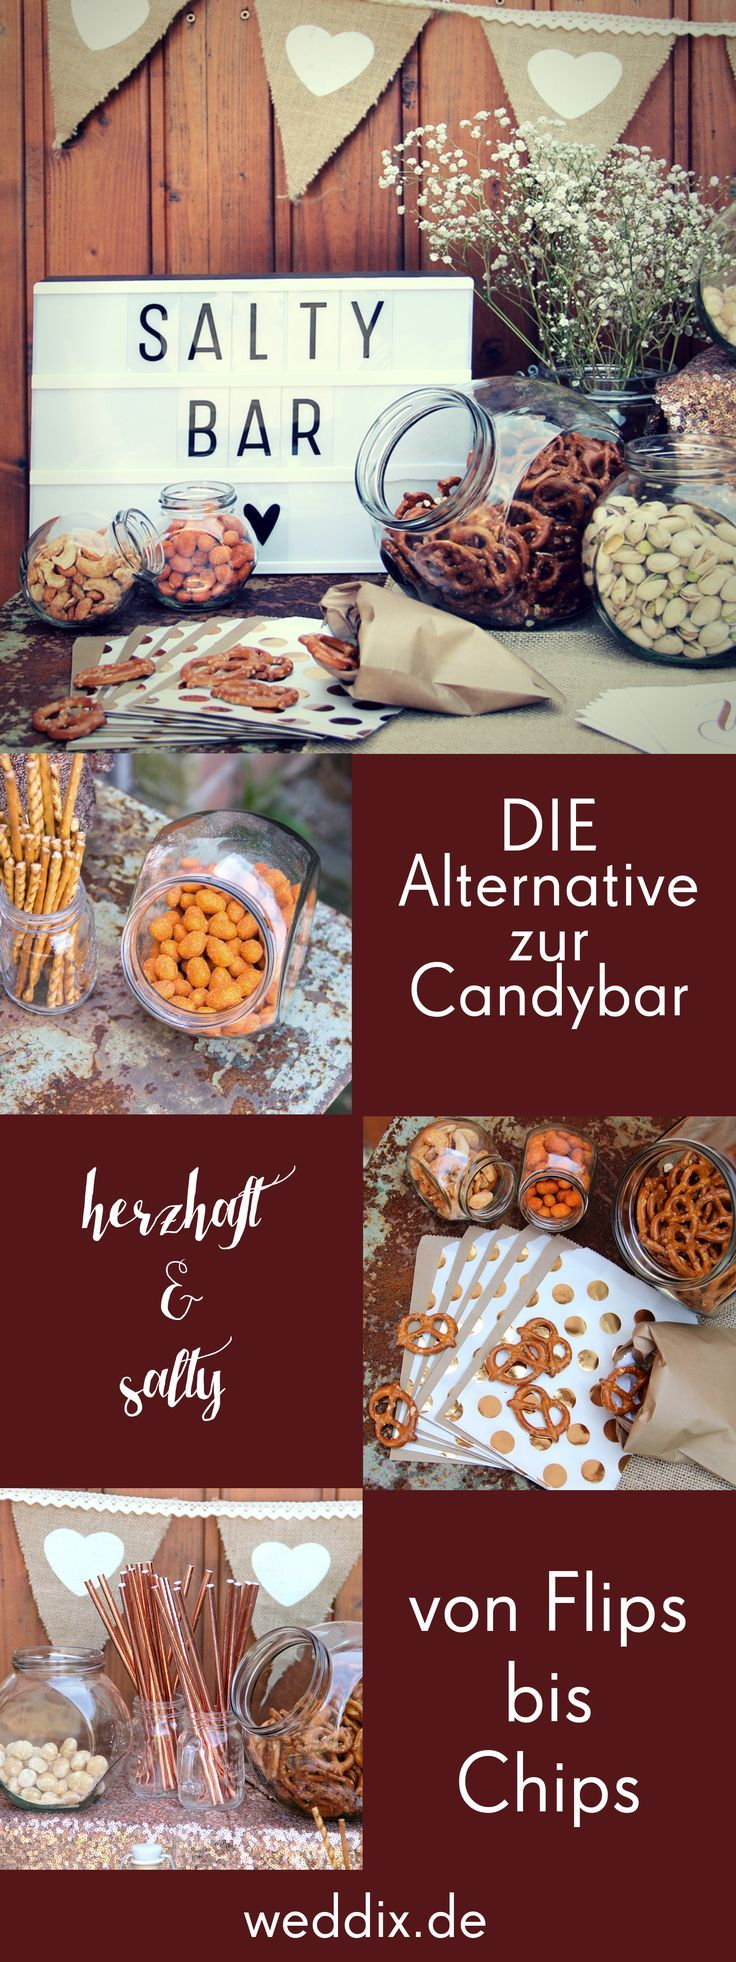 One of the nicest alternatives to Candybar: The #Saltybar! Who is from us? – Wedding